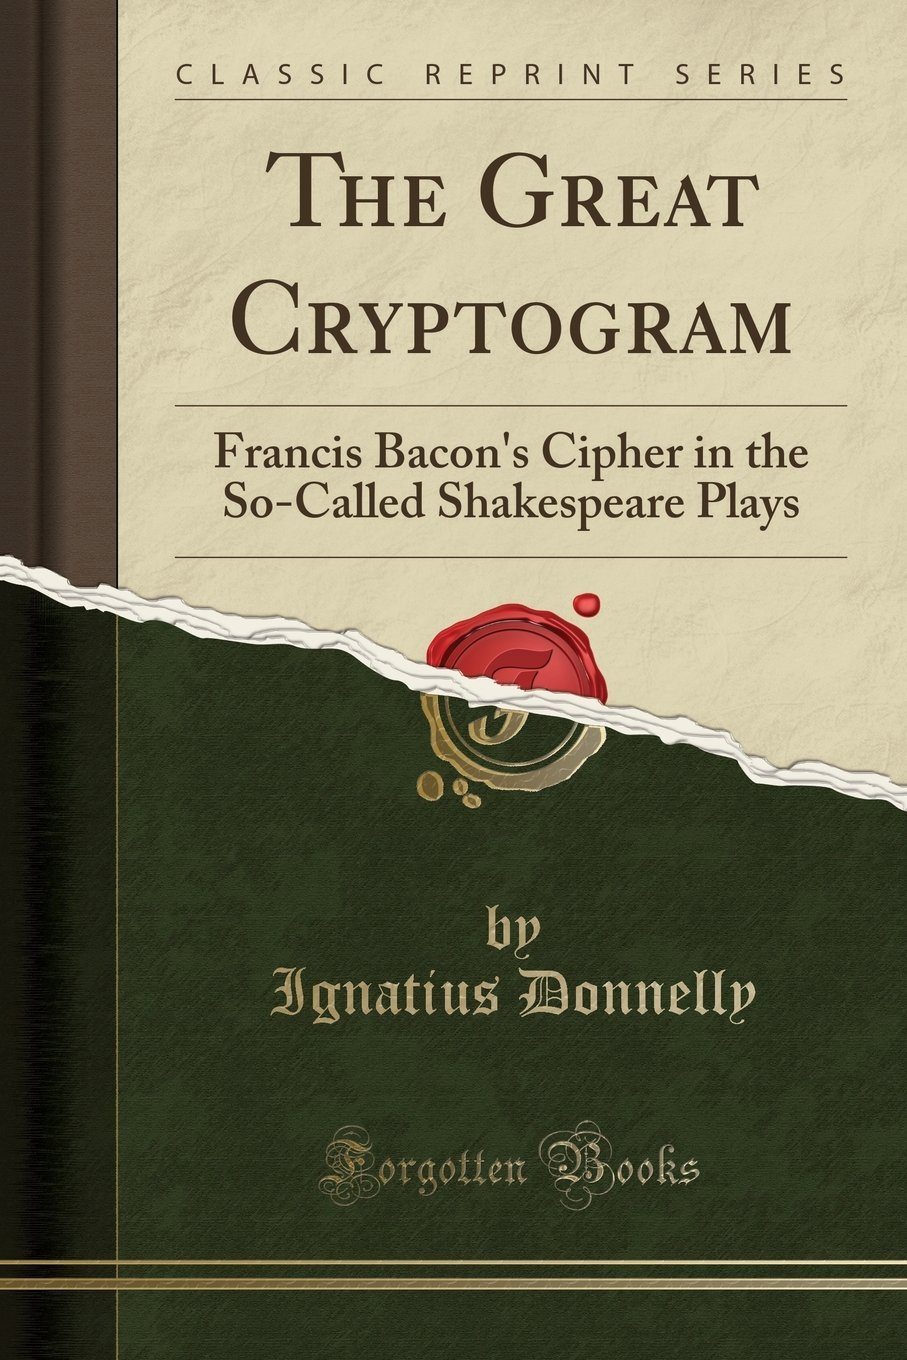 Amazon.com: The Great Cryptogram: Francis Bacon's Cipher in the So-Called  Shakespeare Plays (Classic Reprint): 9780282342333: Donnelly, Ignatius:  Books